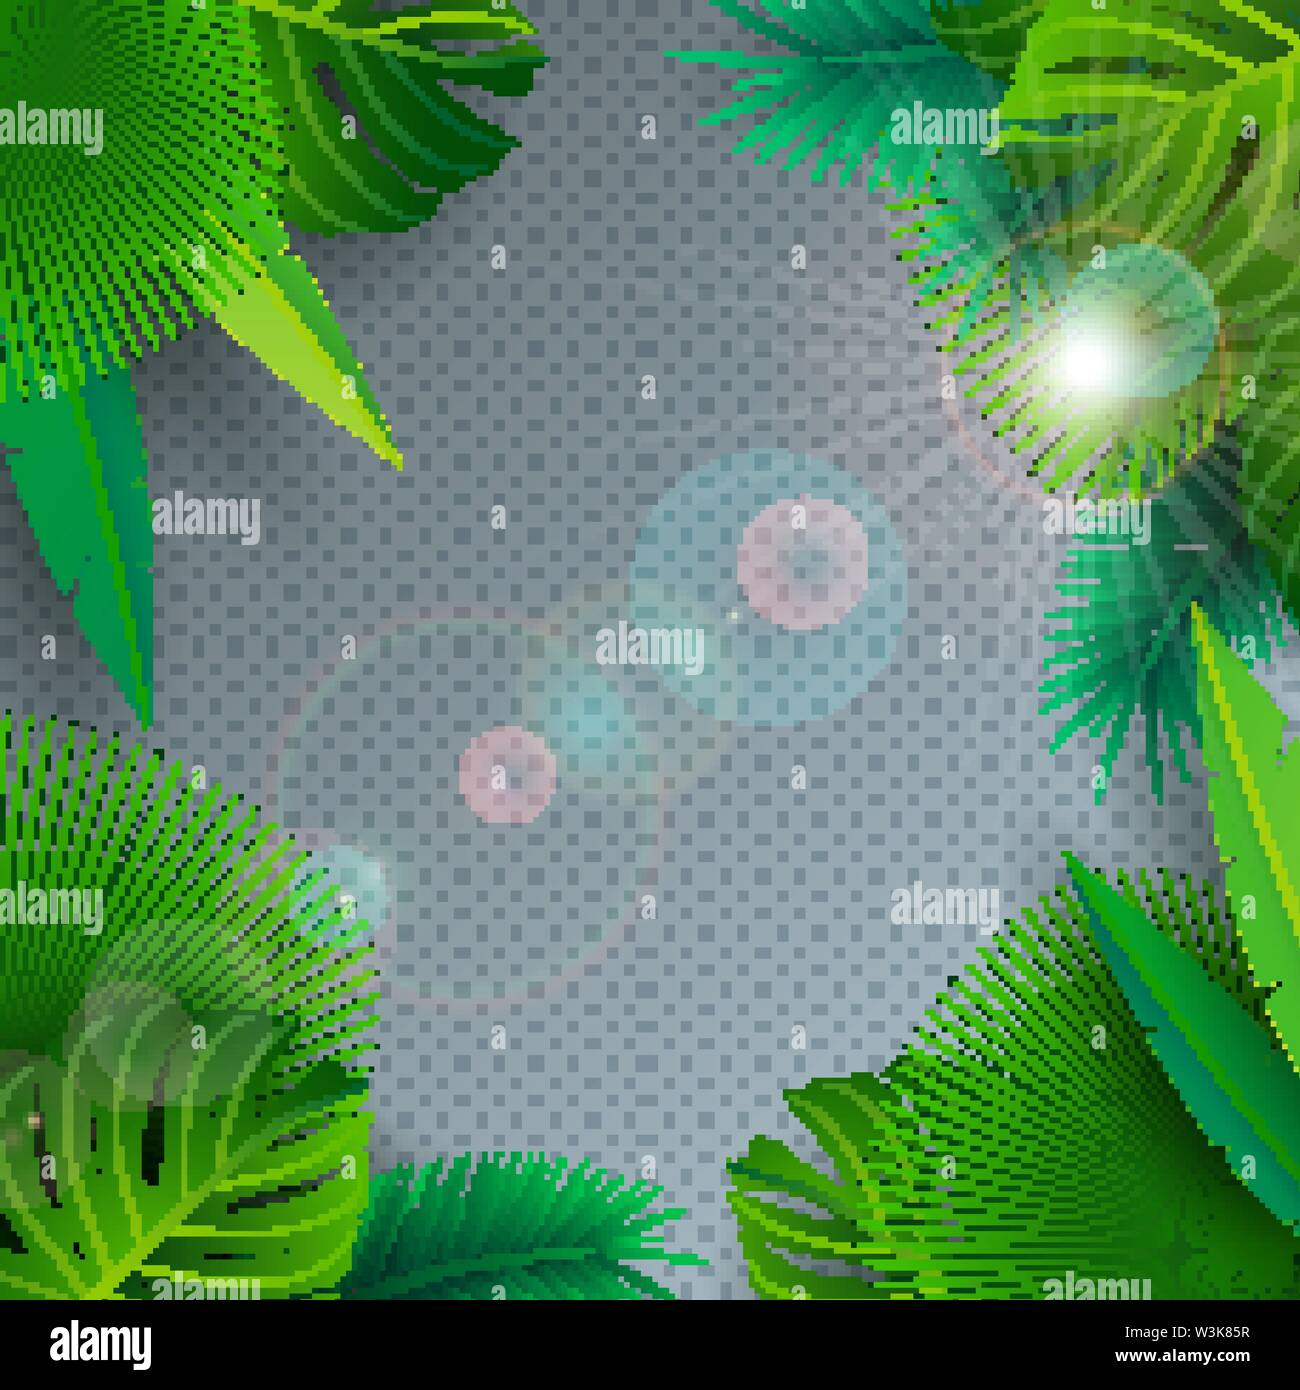 Vector Summer Illustration with Tropical Palm Leaves on Transparent Background. Exotic Plants and Sunlight for Holiday Banner, Flyer, Invitation - Stock Image